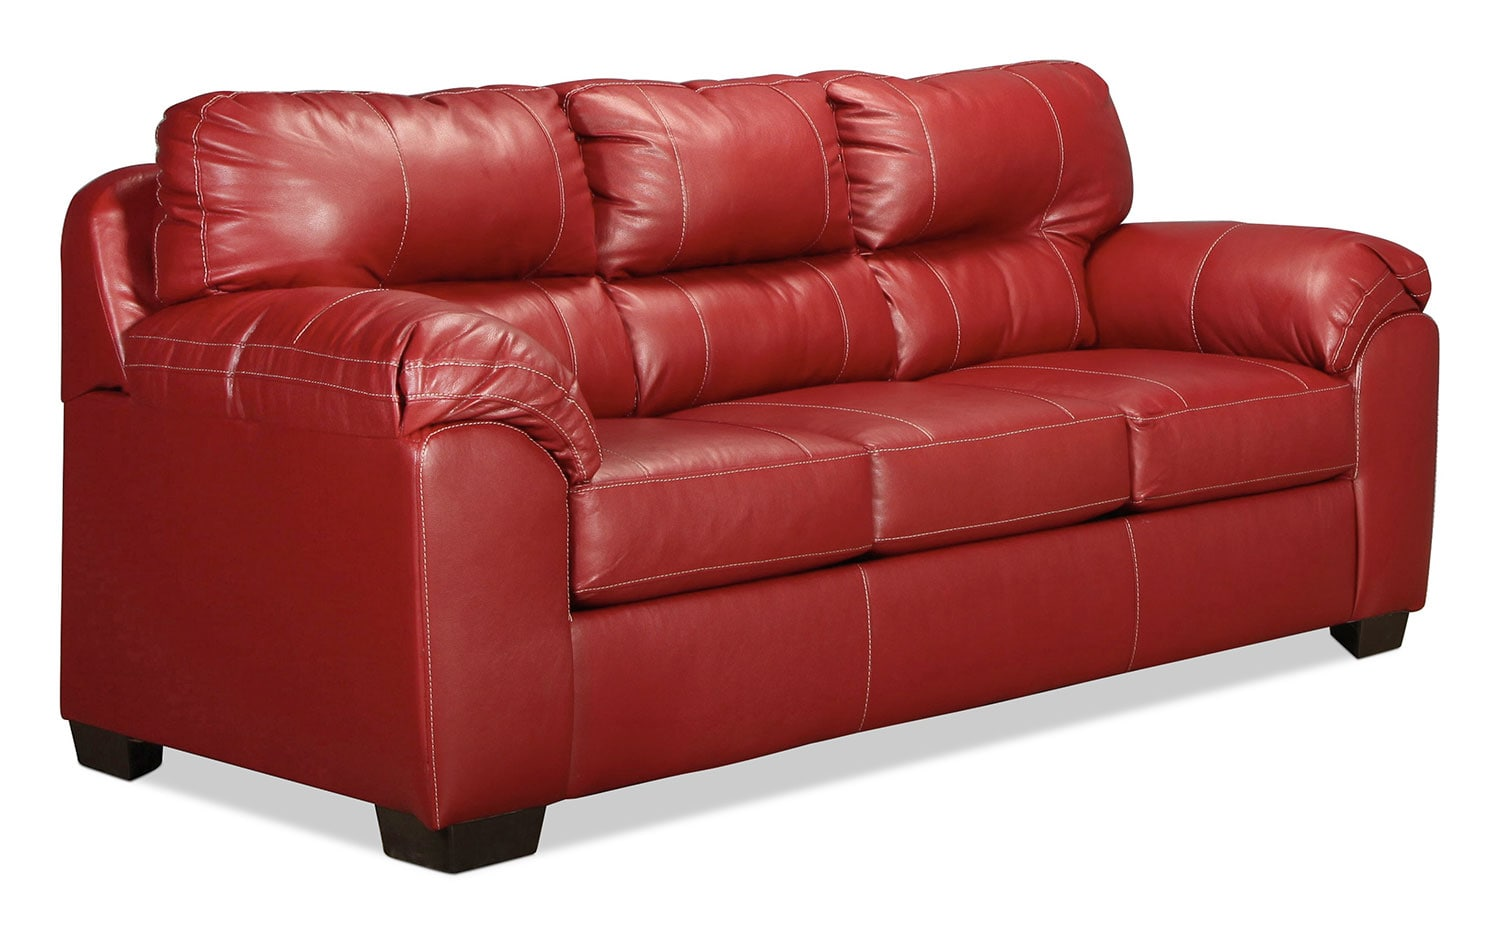 Rigley Queen Sleeper Sofa  Red  Levin Furniture